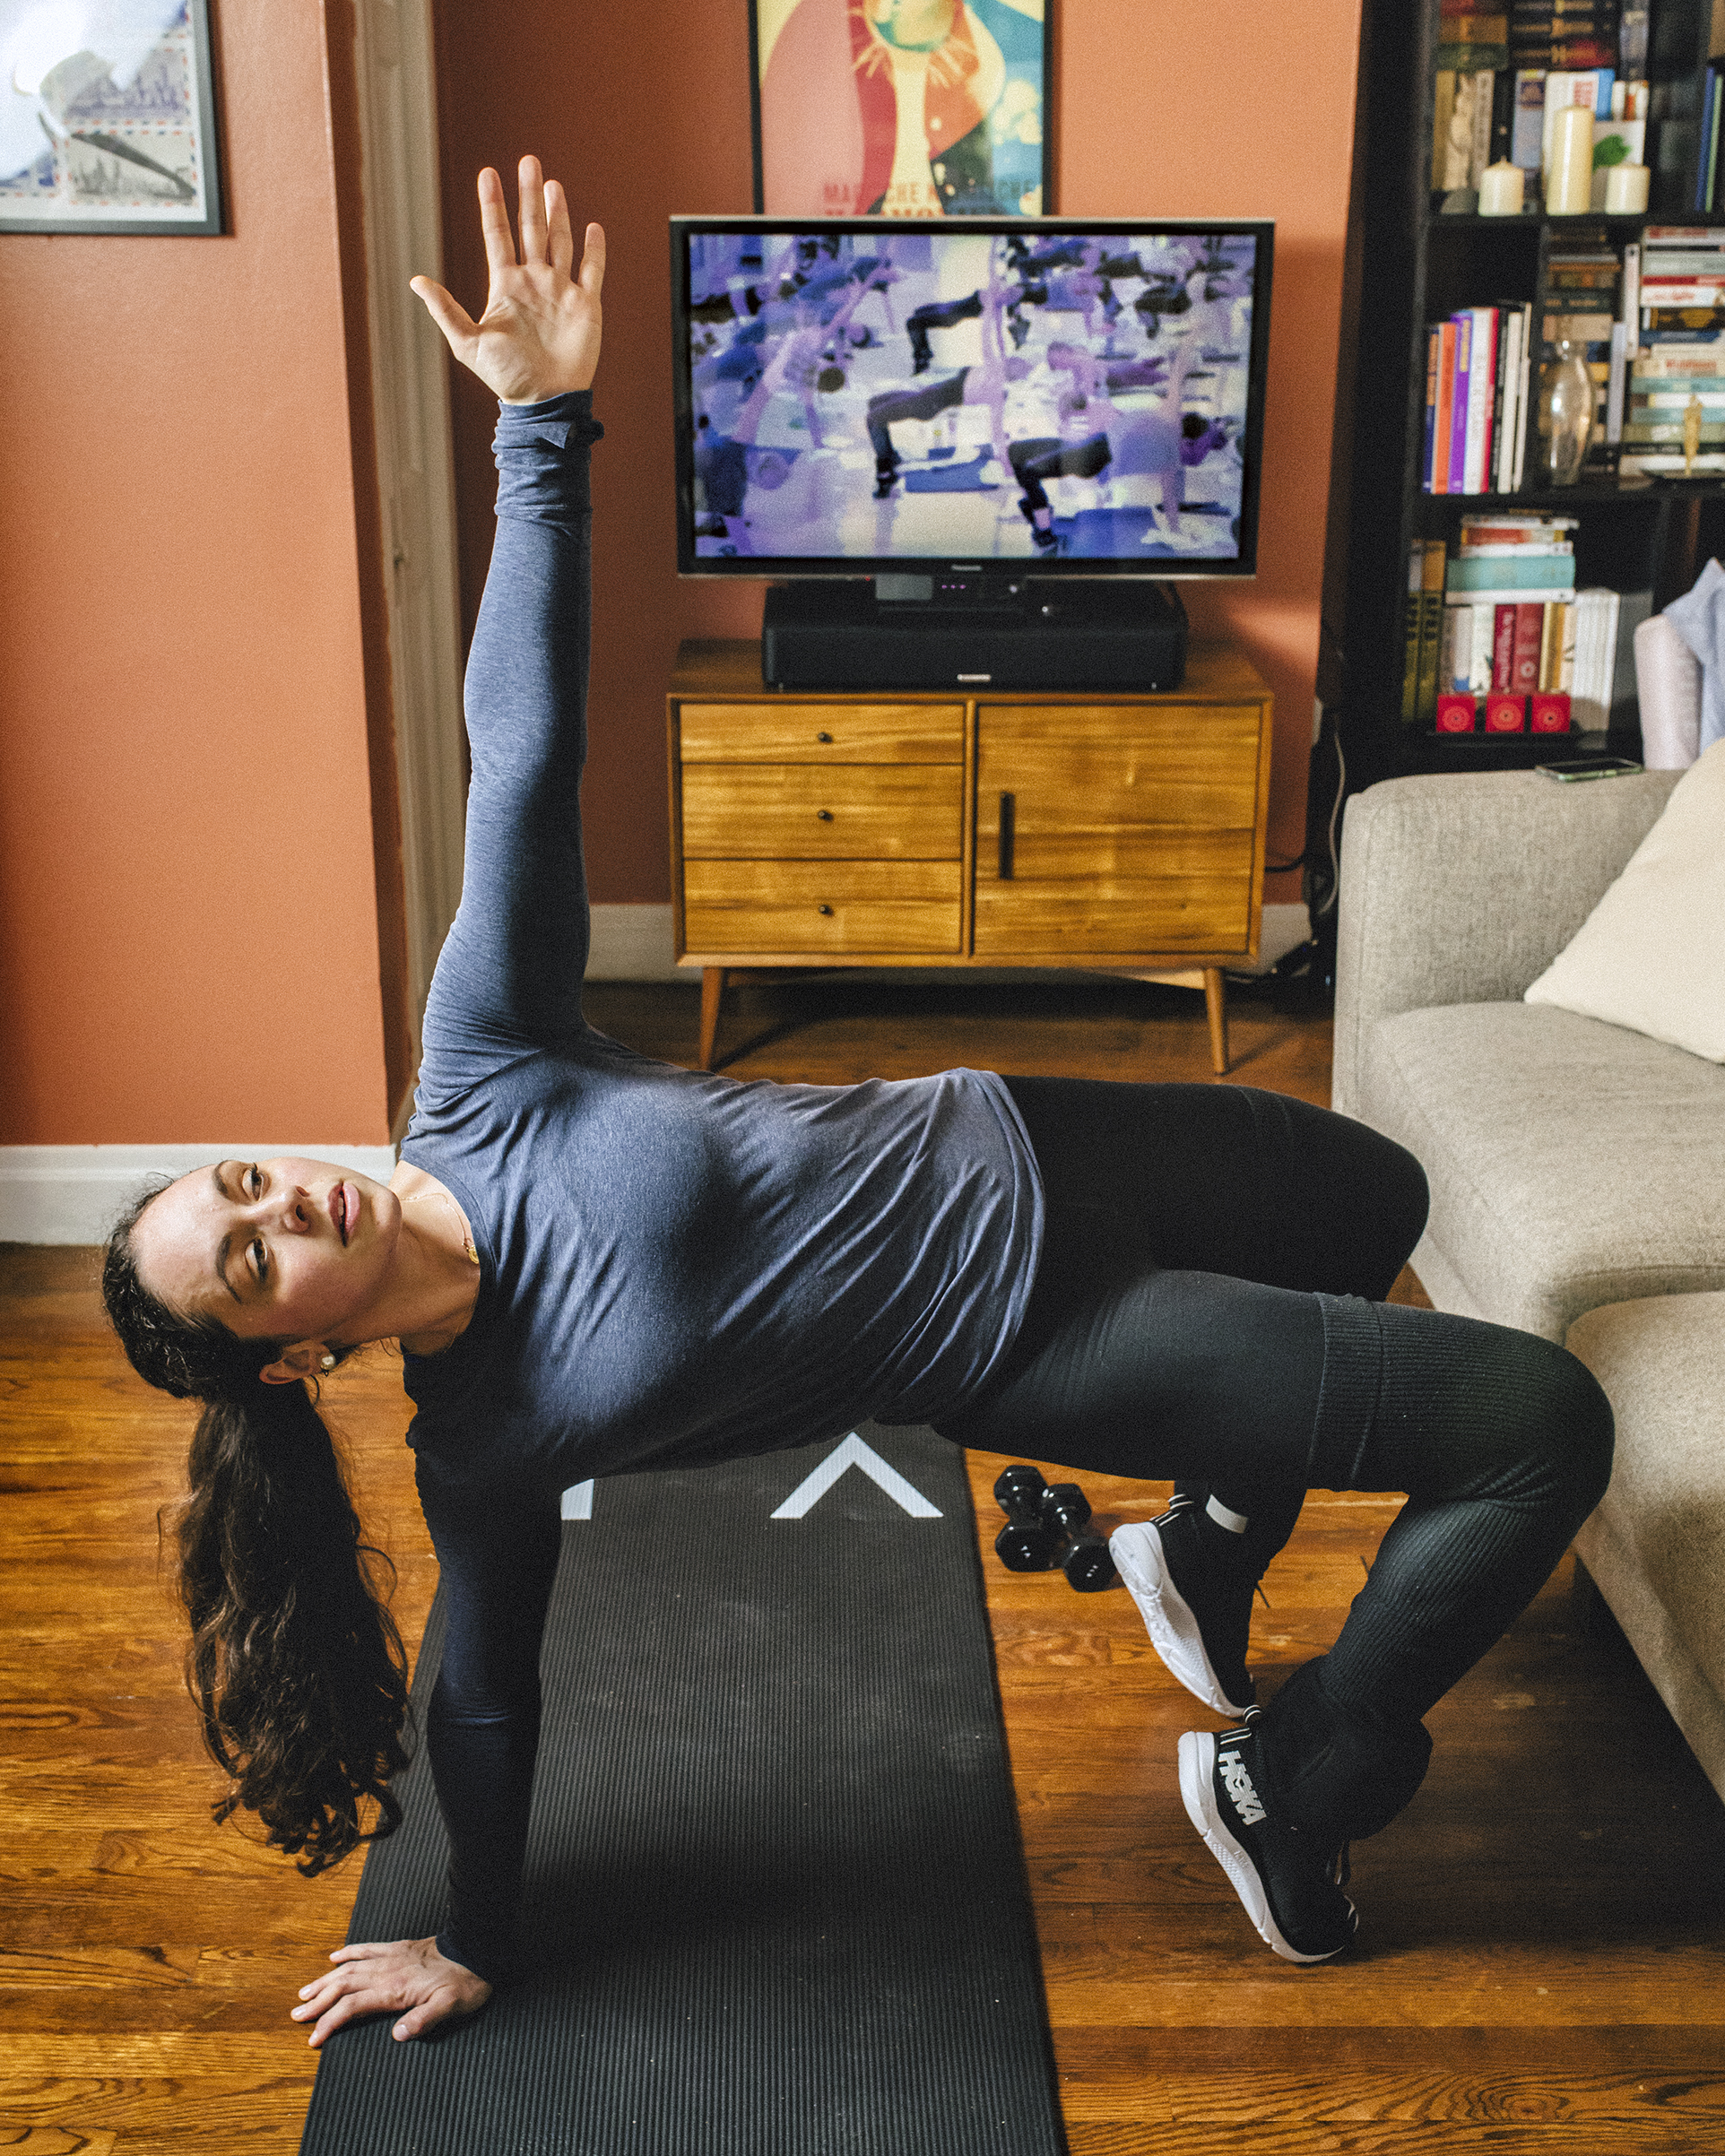 Camille MacFadyen works out in her living room to Tracy Anderson's weekly streaming fitness class. Since having her daughter, MacFadyen has been doing more exercise at her home in the SoHo neighborhood of New York City. CREDIT: Bryan Derballa for TIME